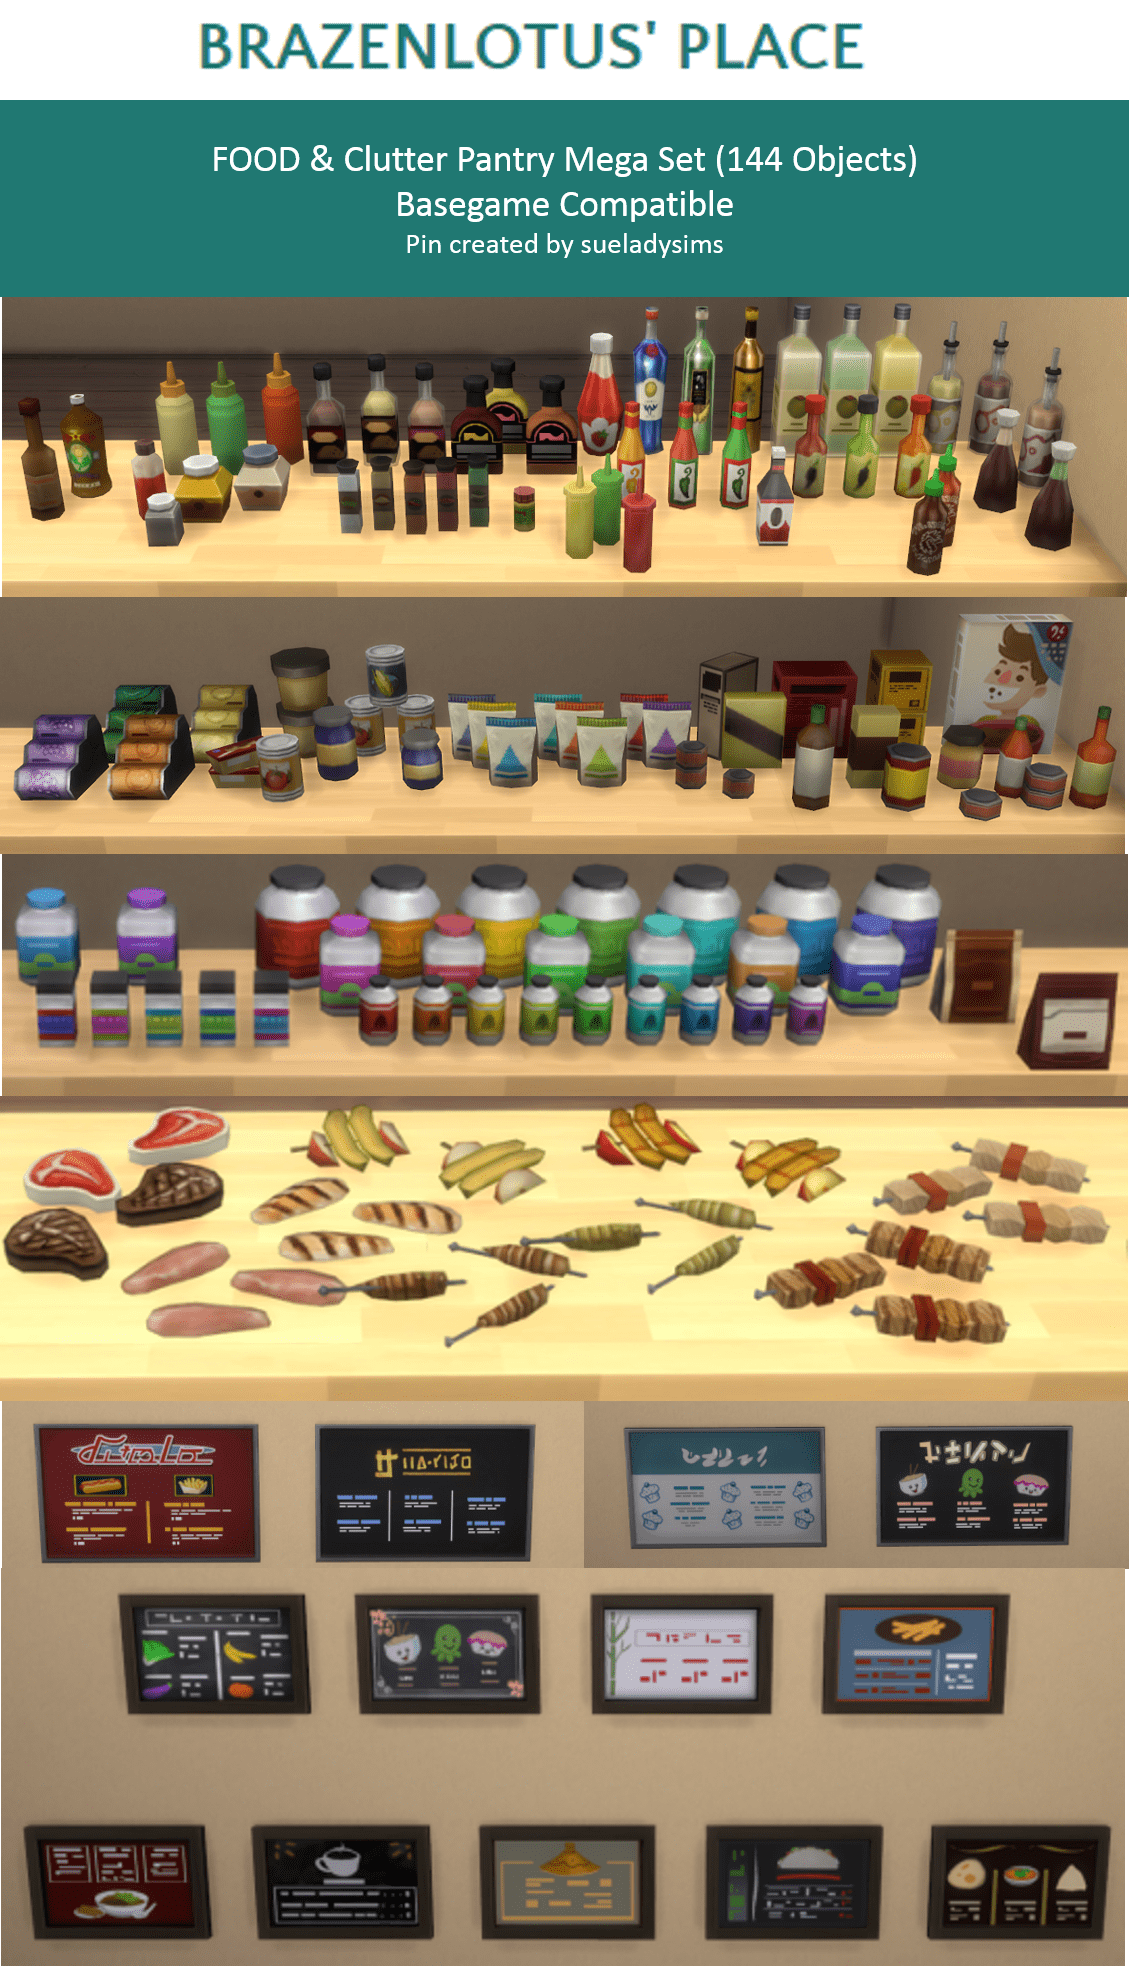 Cc Sims 4 Objects : objects, Pantry, Clutter, Brazen, Lotus, Kitchen,